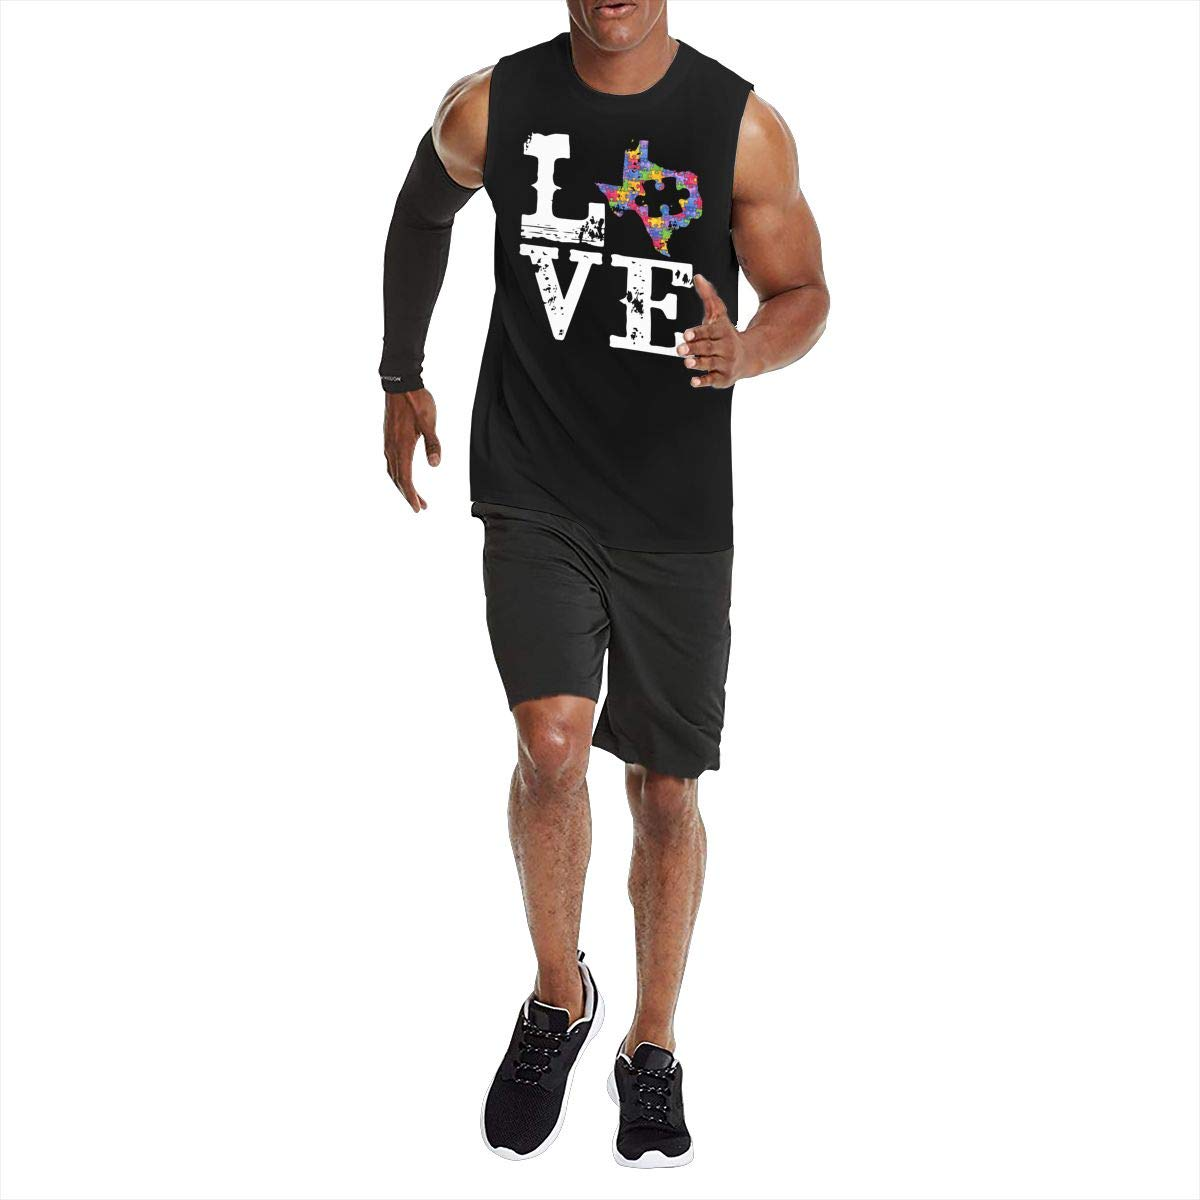 Mens Love Texas Autism Tank Top Sleeveless Athletic Muscle T-Shirts